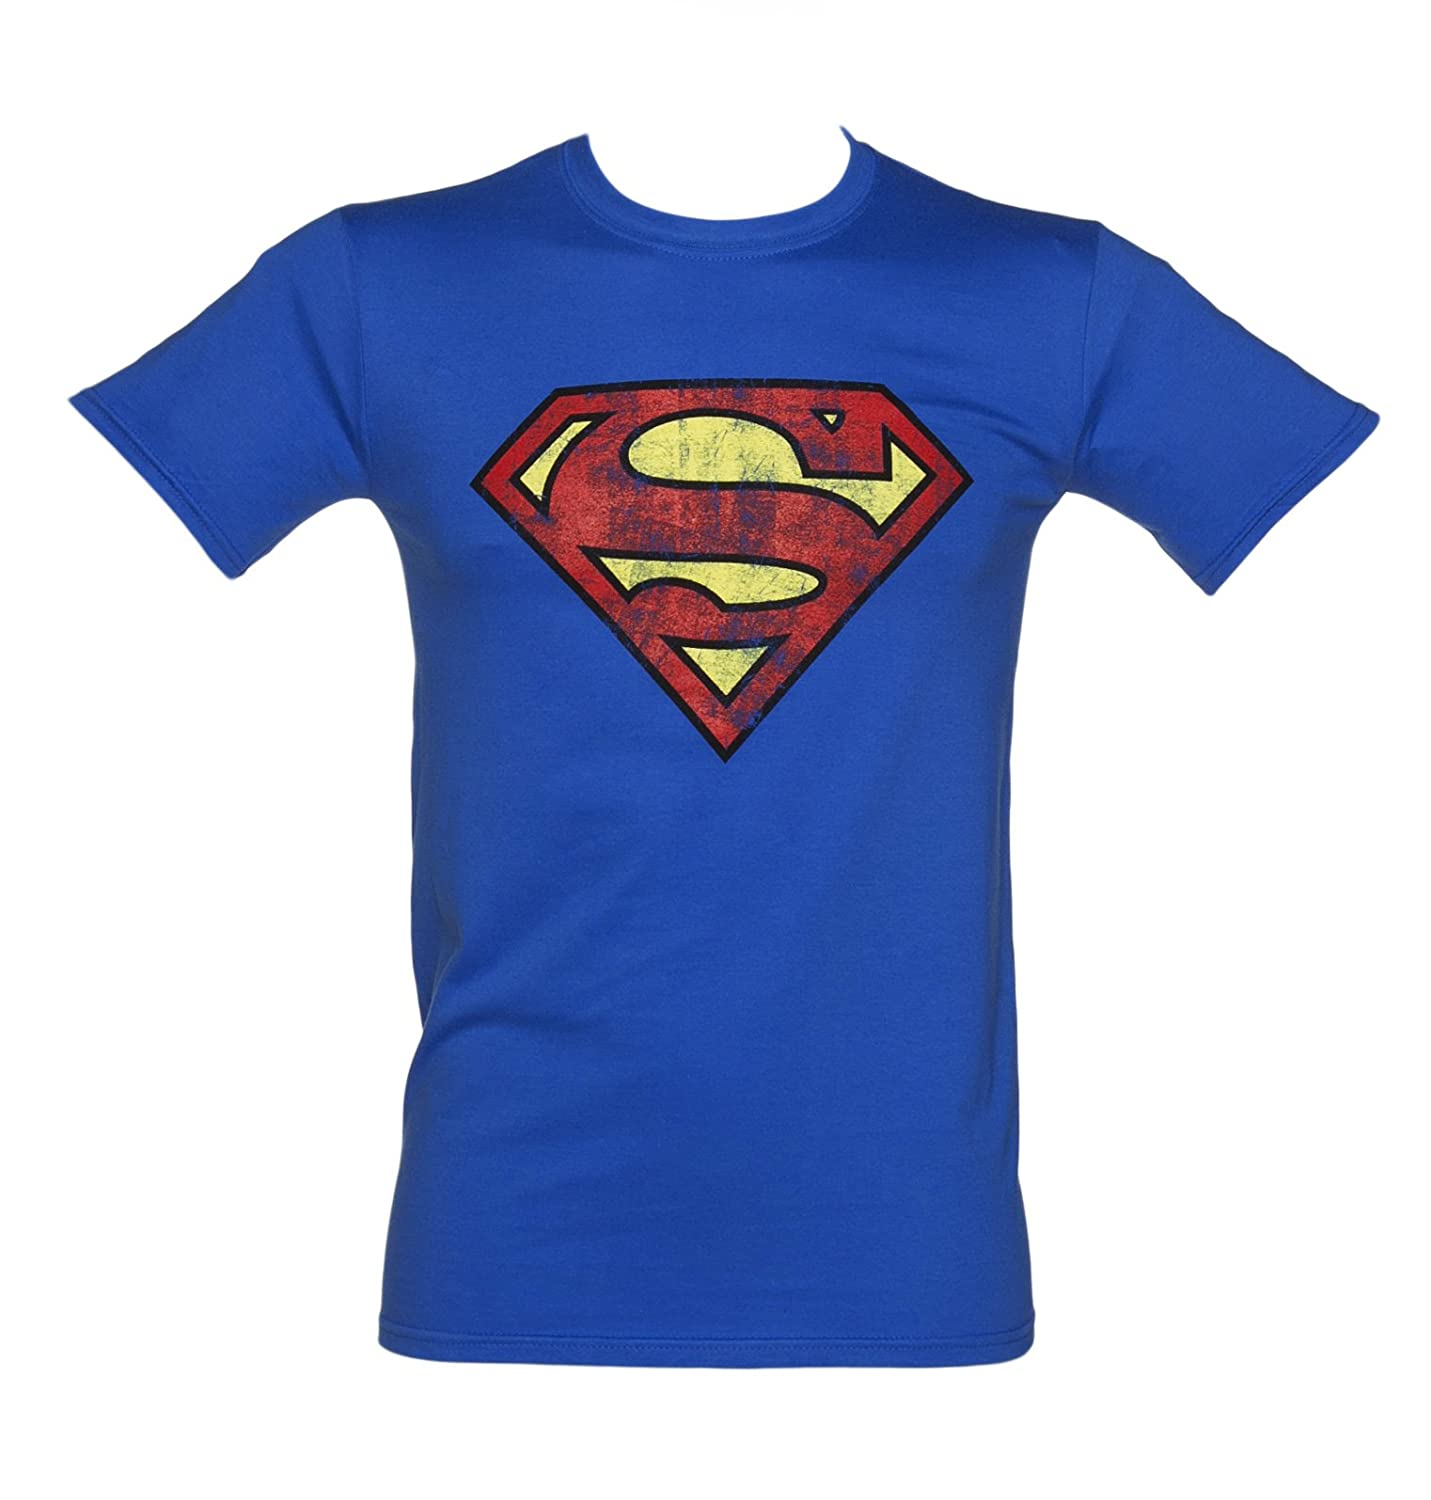 be3bd5def8a Top5  Mens Blue Distressed Superman Logo T Shirt - Superhero And Villain  Tees